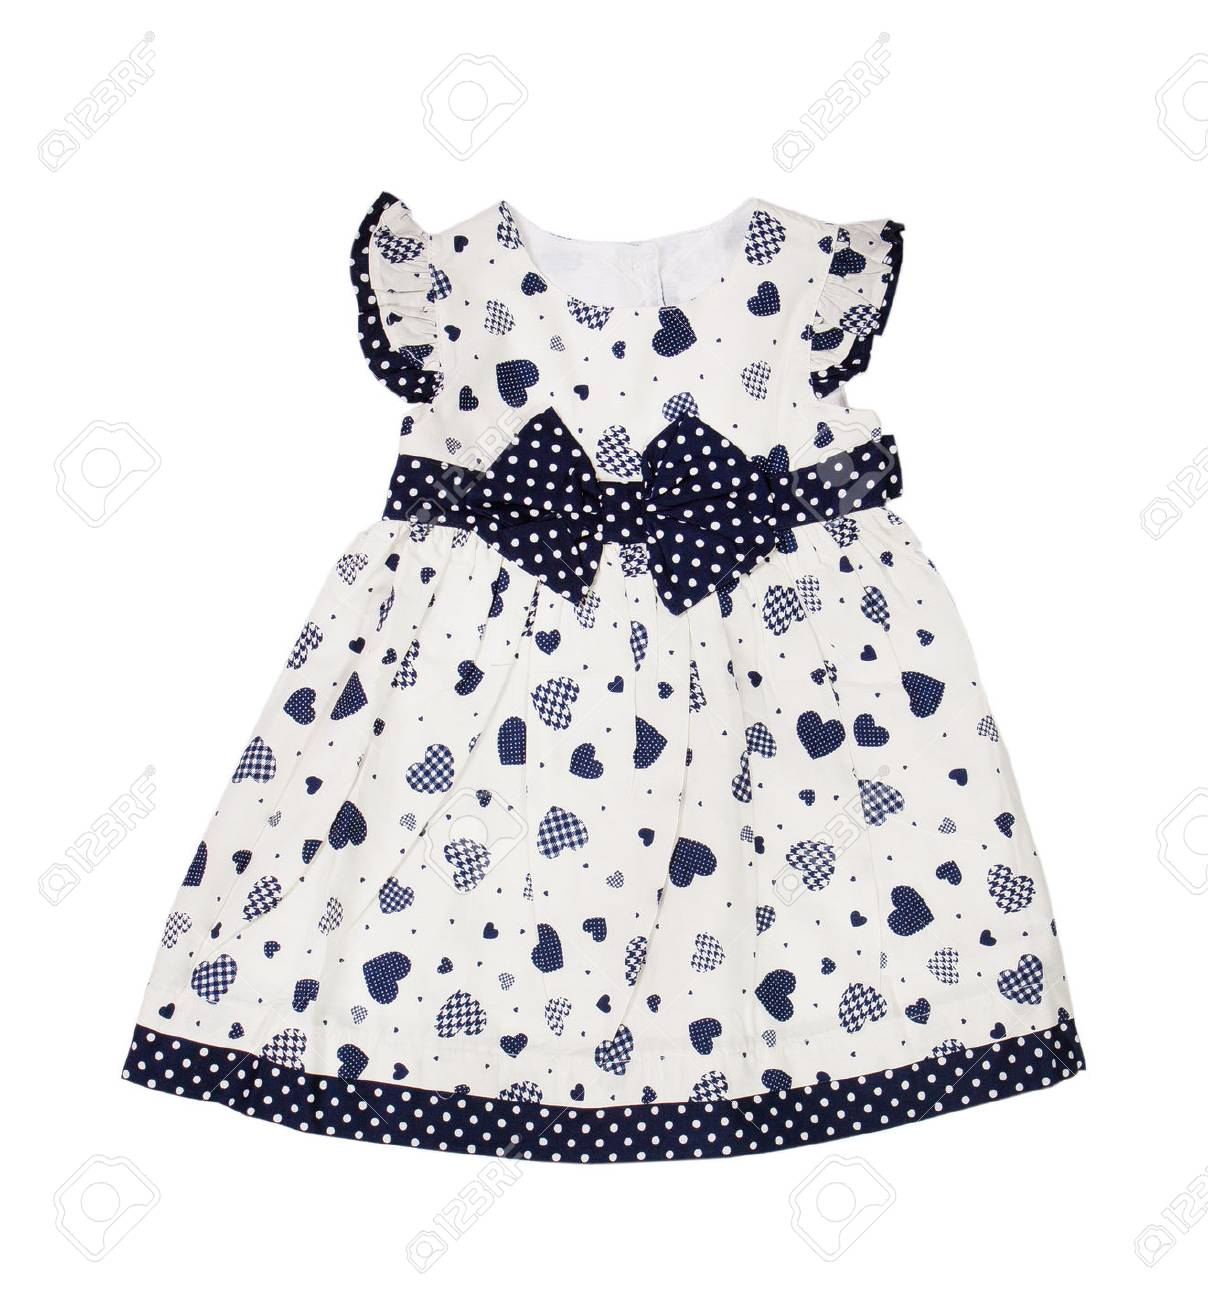 c2968301916e Red Knitted Baby Dress On A White Background Stock Photo